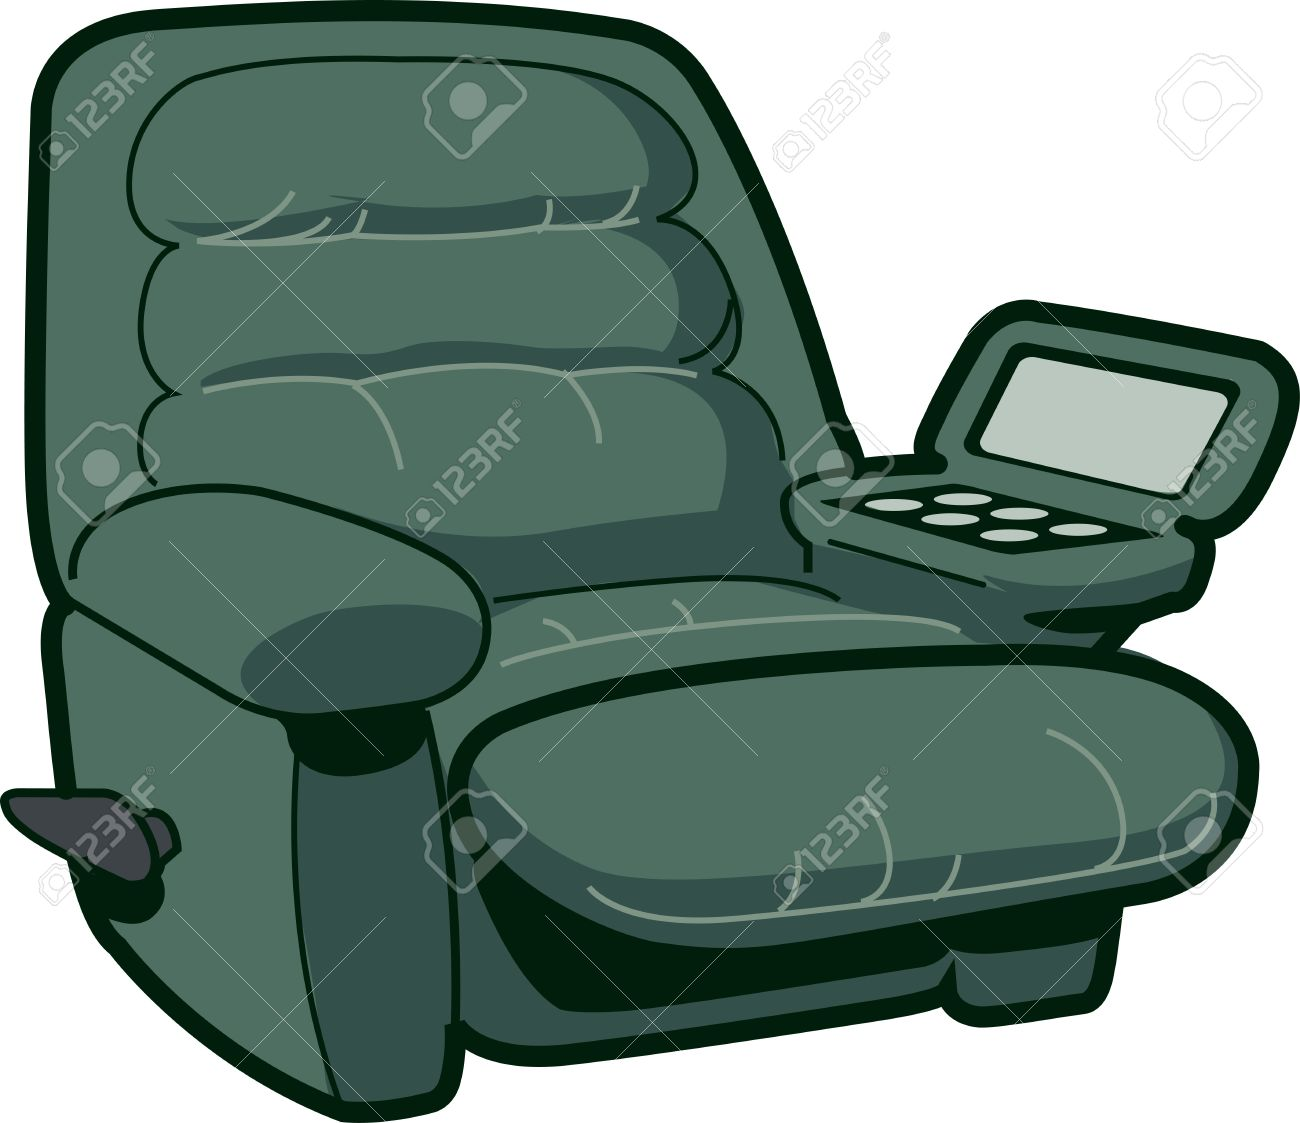 Reclining Chair Illustration Stock Vector - 20686791  sc 1 st  123RF Stock Photos & Reclining Chair Illustration Royalty Free Cliparts Vectors And ... islam-shia.org